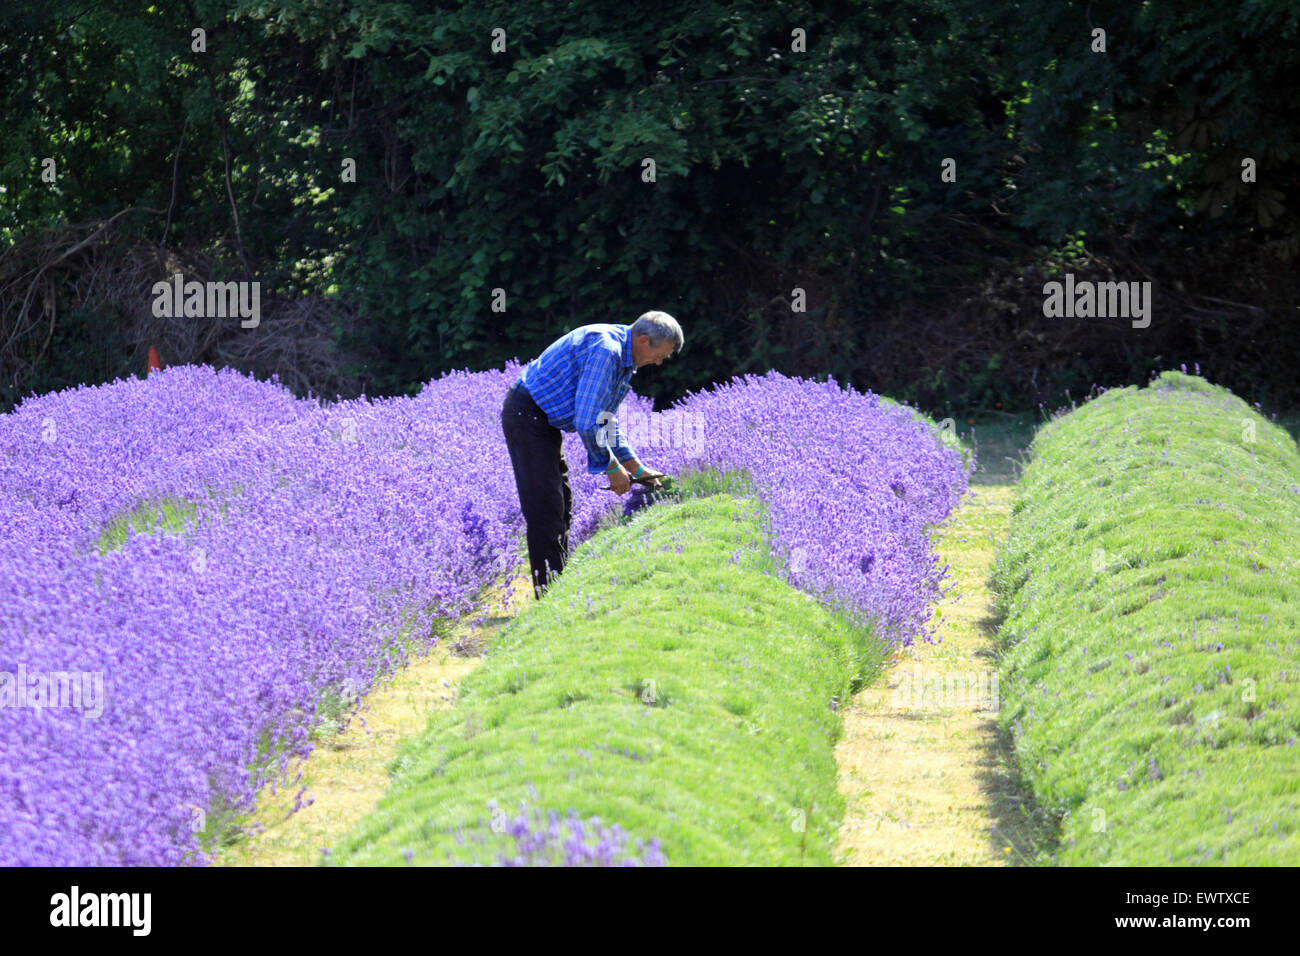 Harvesting the crop at Mayfield Lavender, Croydon Lane, Banstead, Surrey UK. - Stock Image